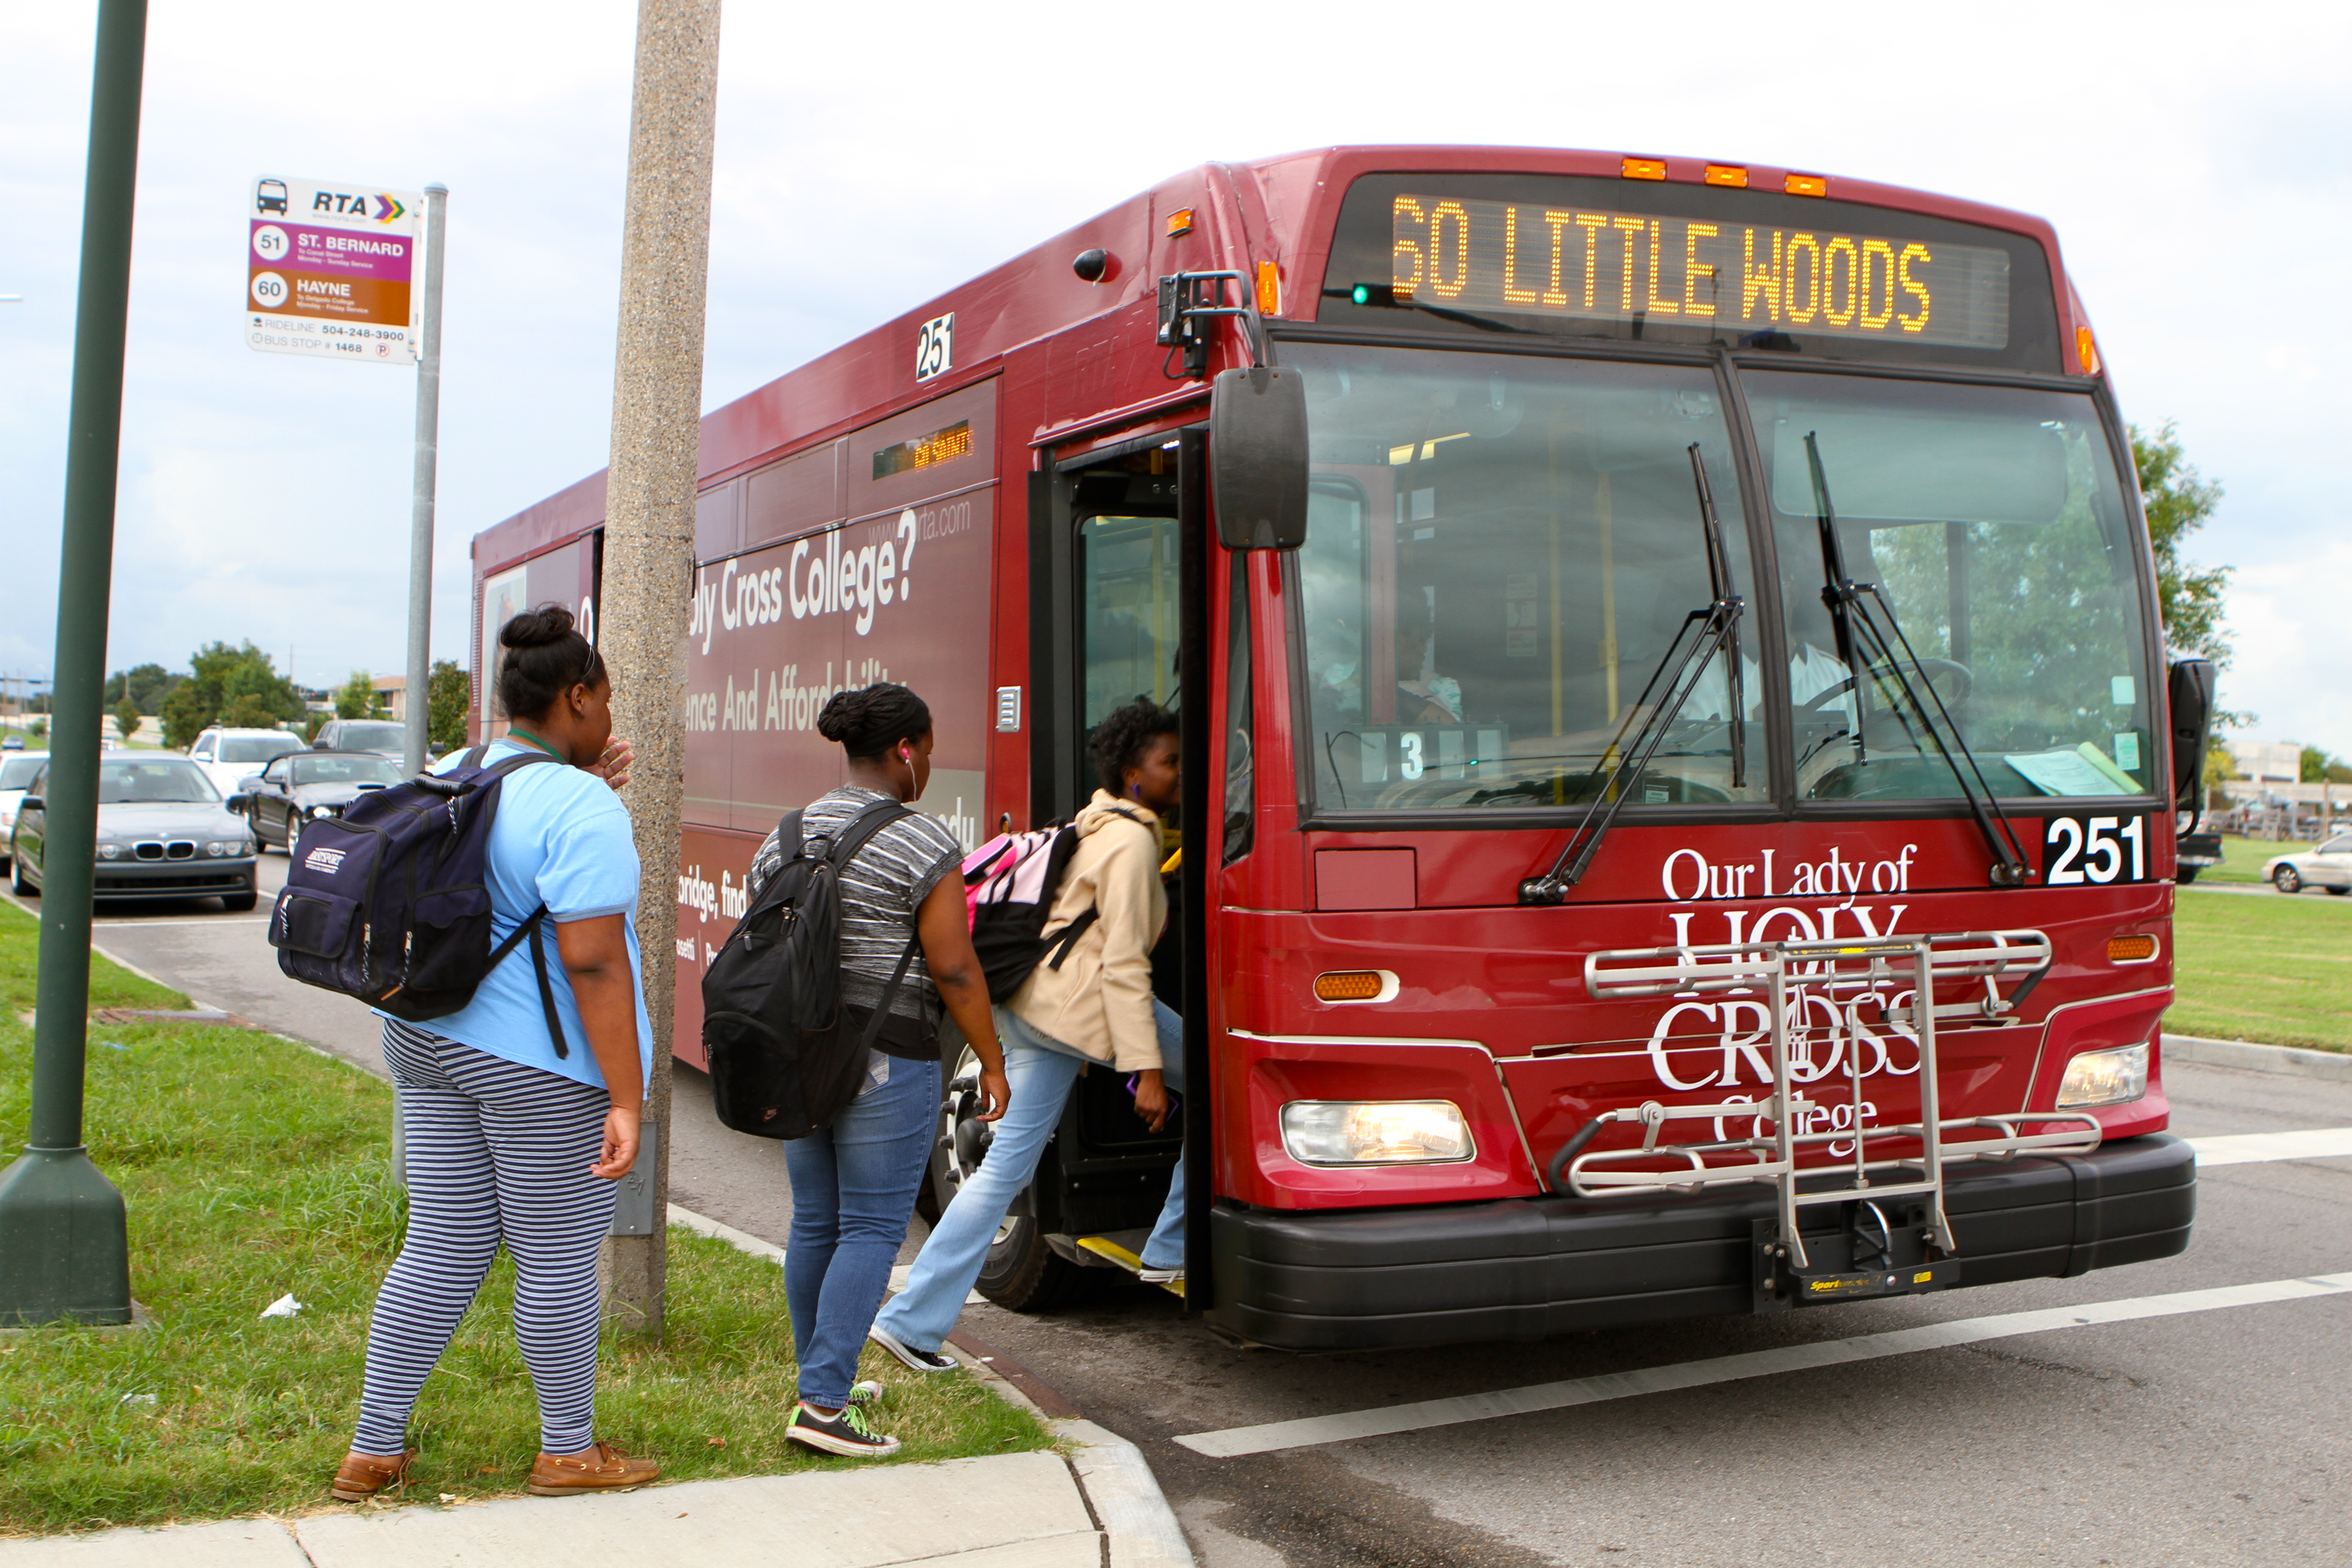 New Orleans Convention Center files suit against public transit system over millions in contested revenue